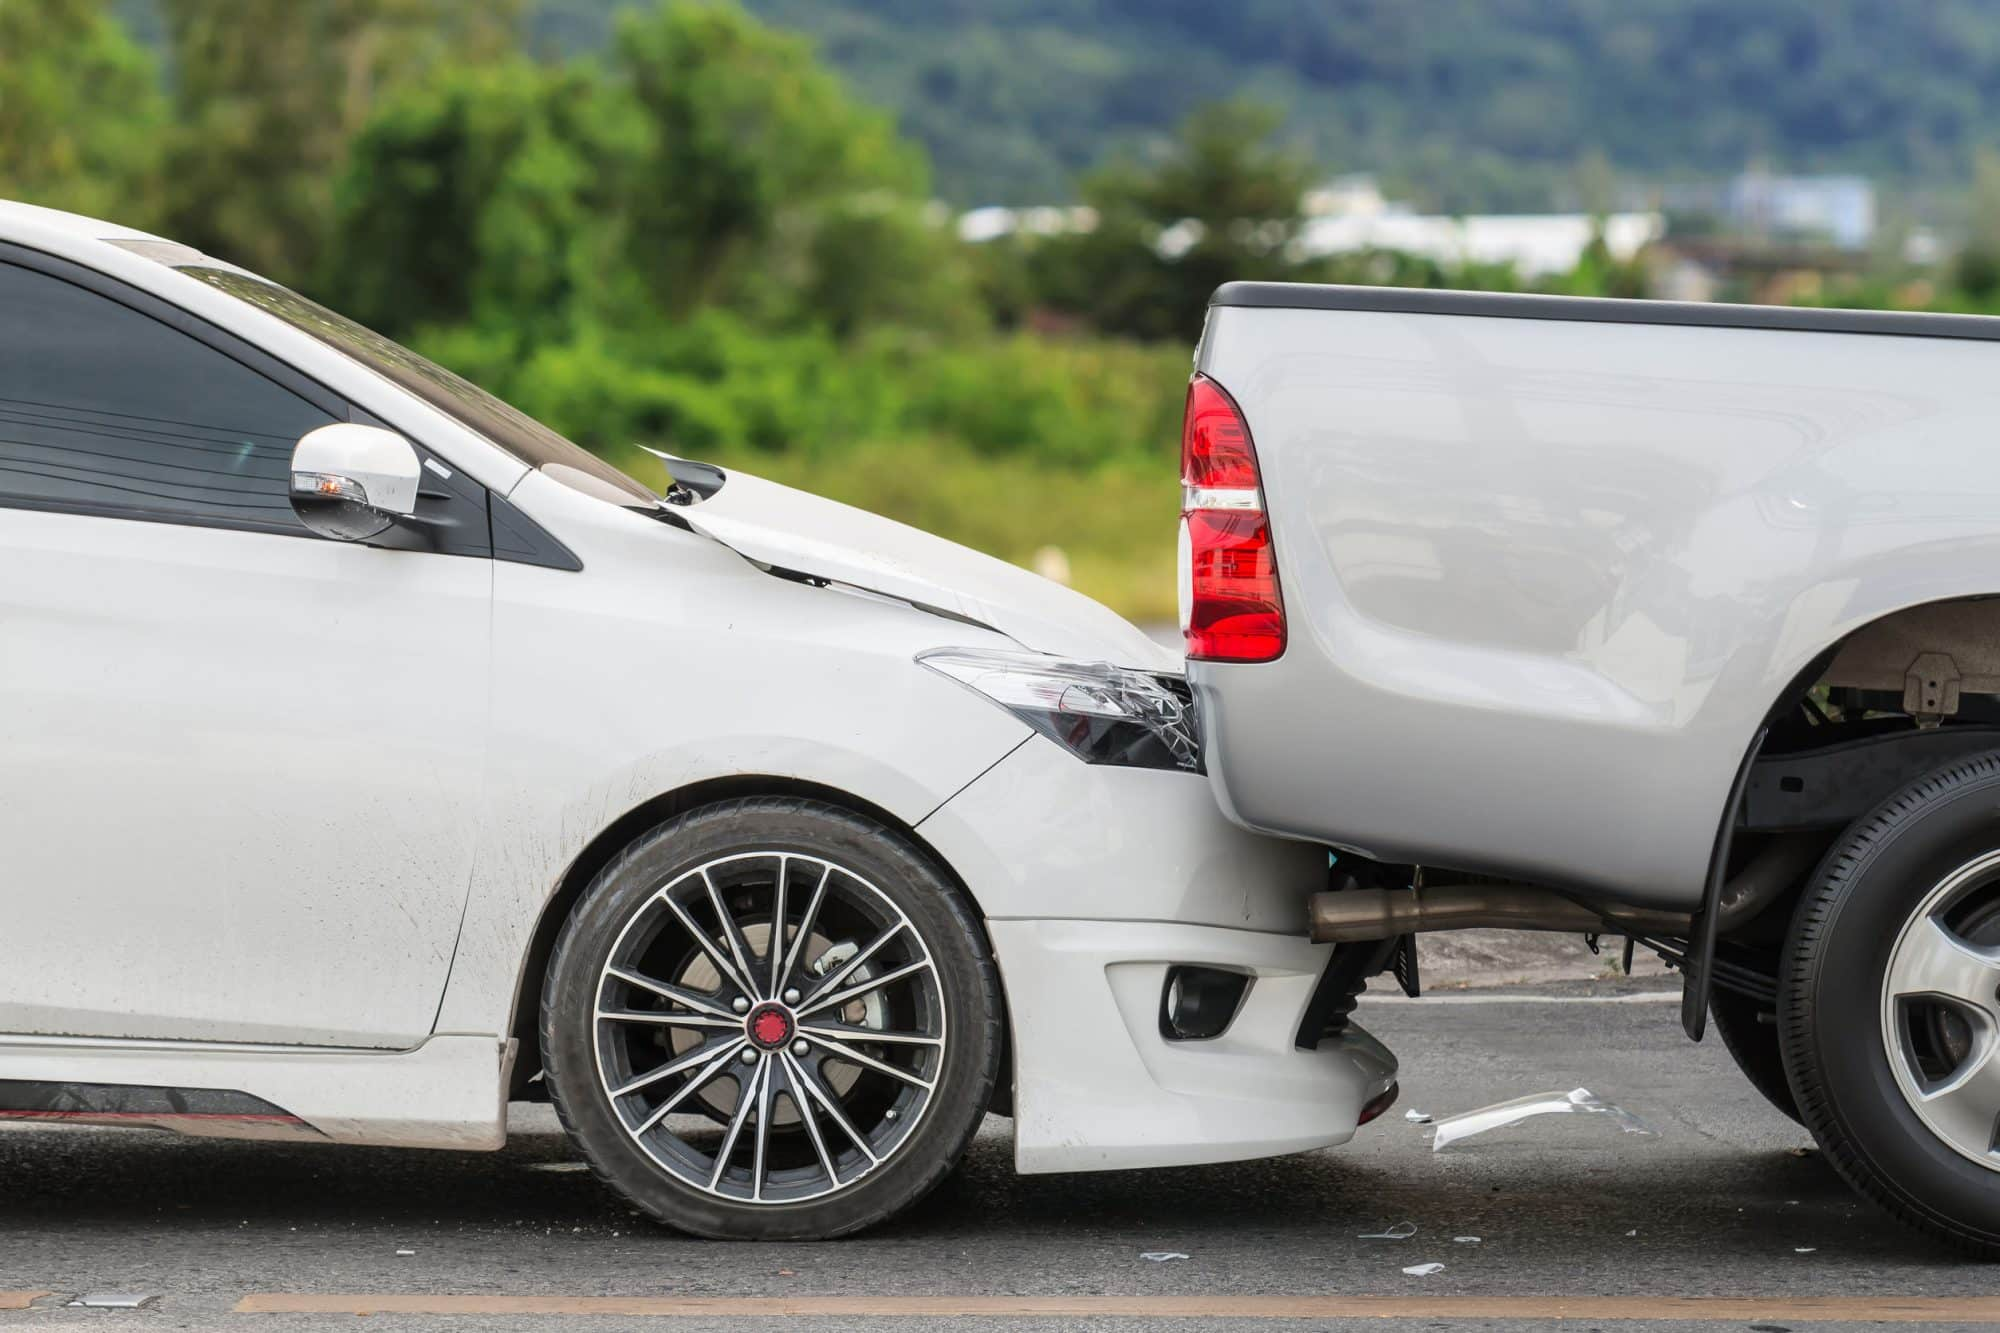 Most Common Injuries Caused by Rear-End Collisions